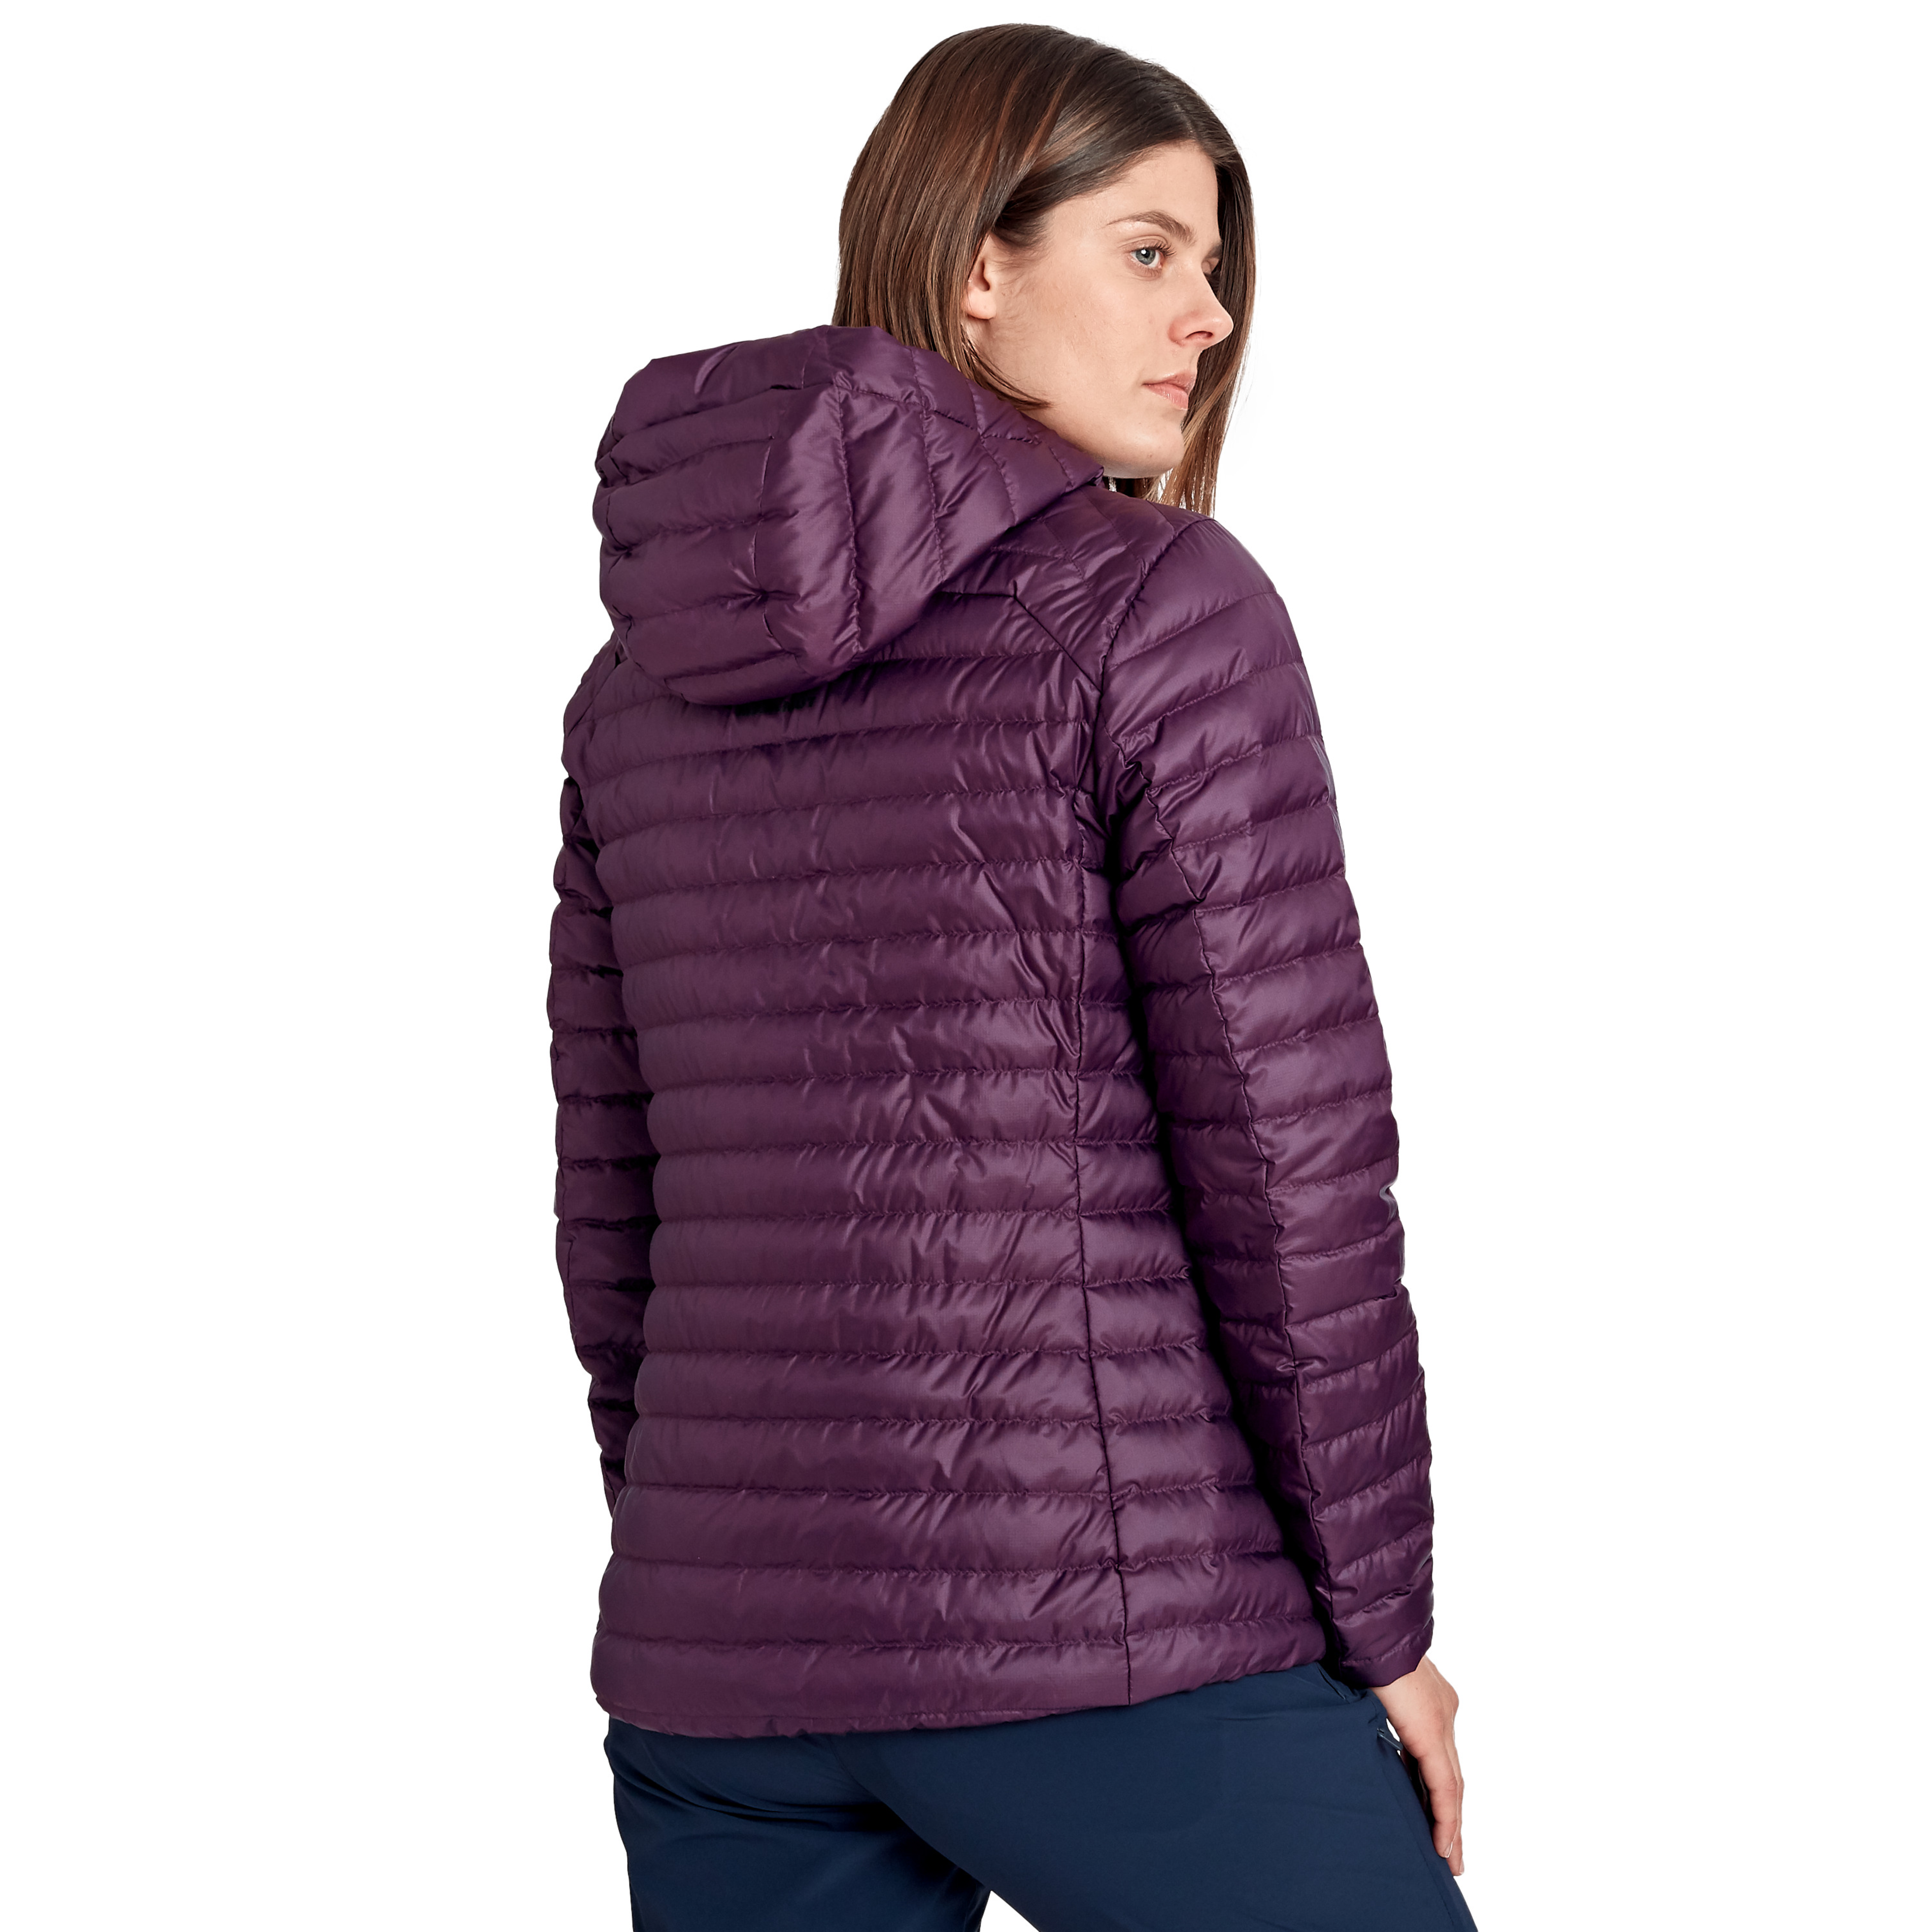 Convey IN Hooded Jacket Women product image